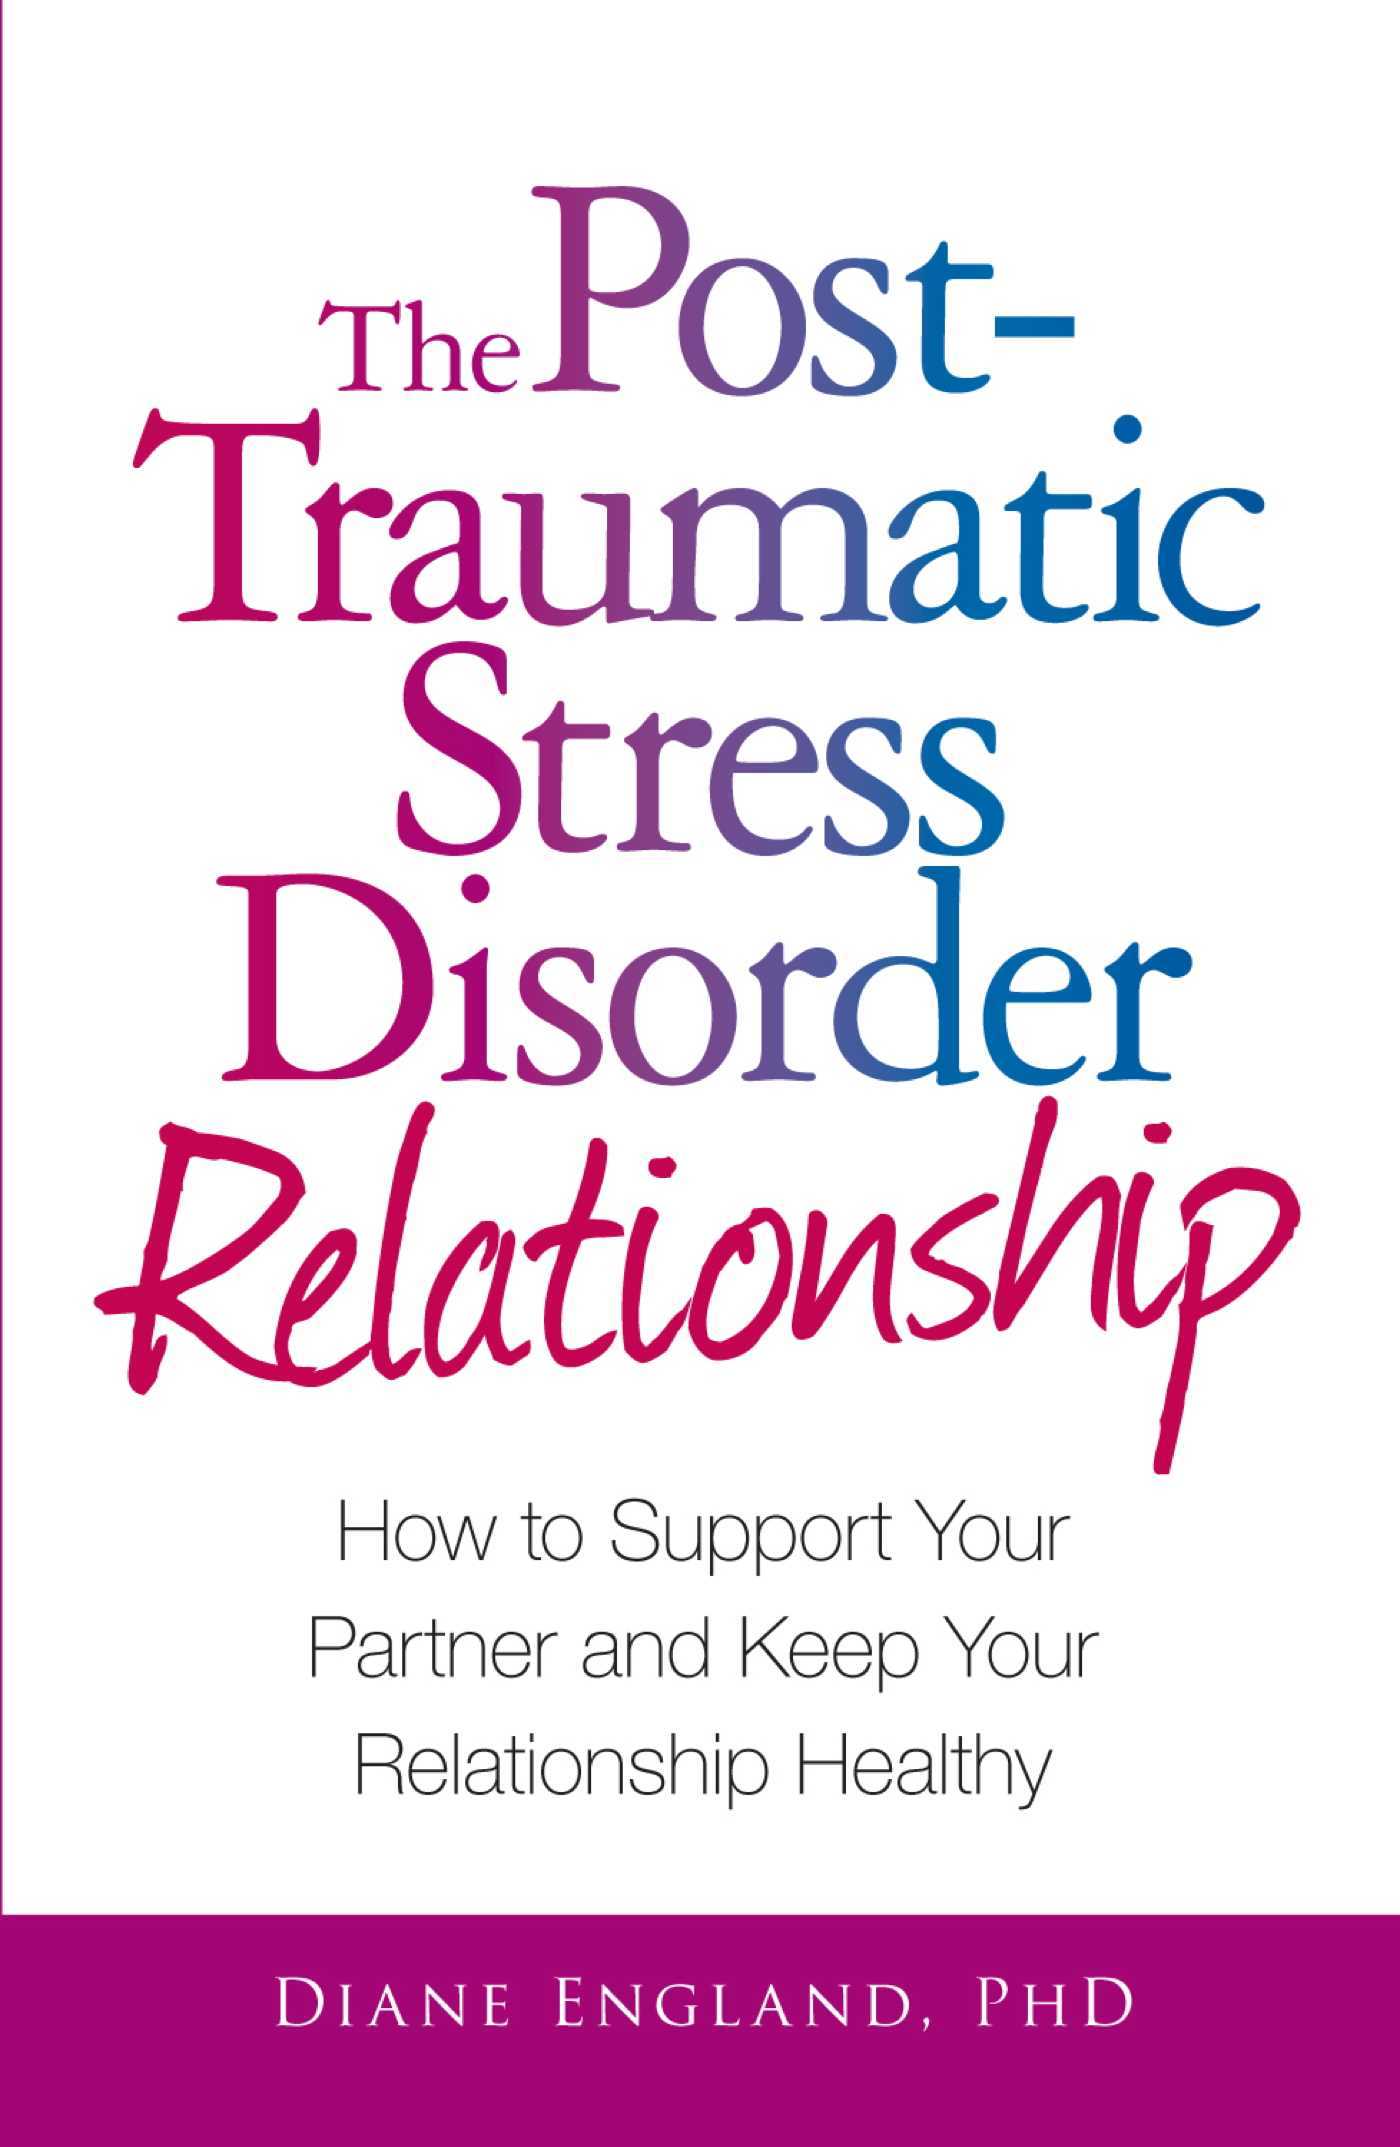 The Post Traumatic Stress Disorder Relationship Ebook By